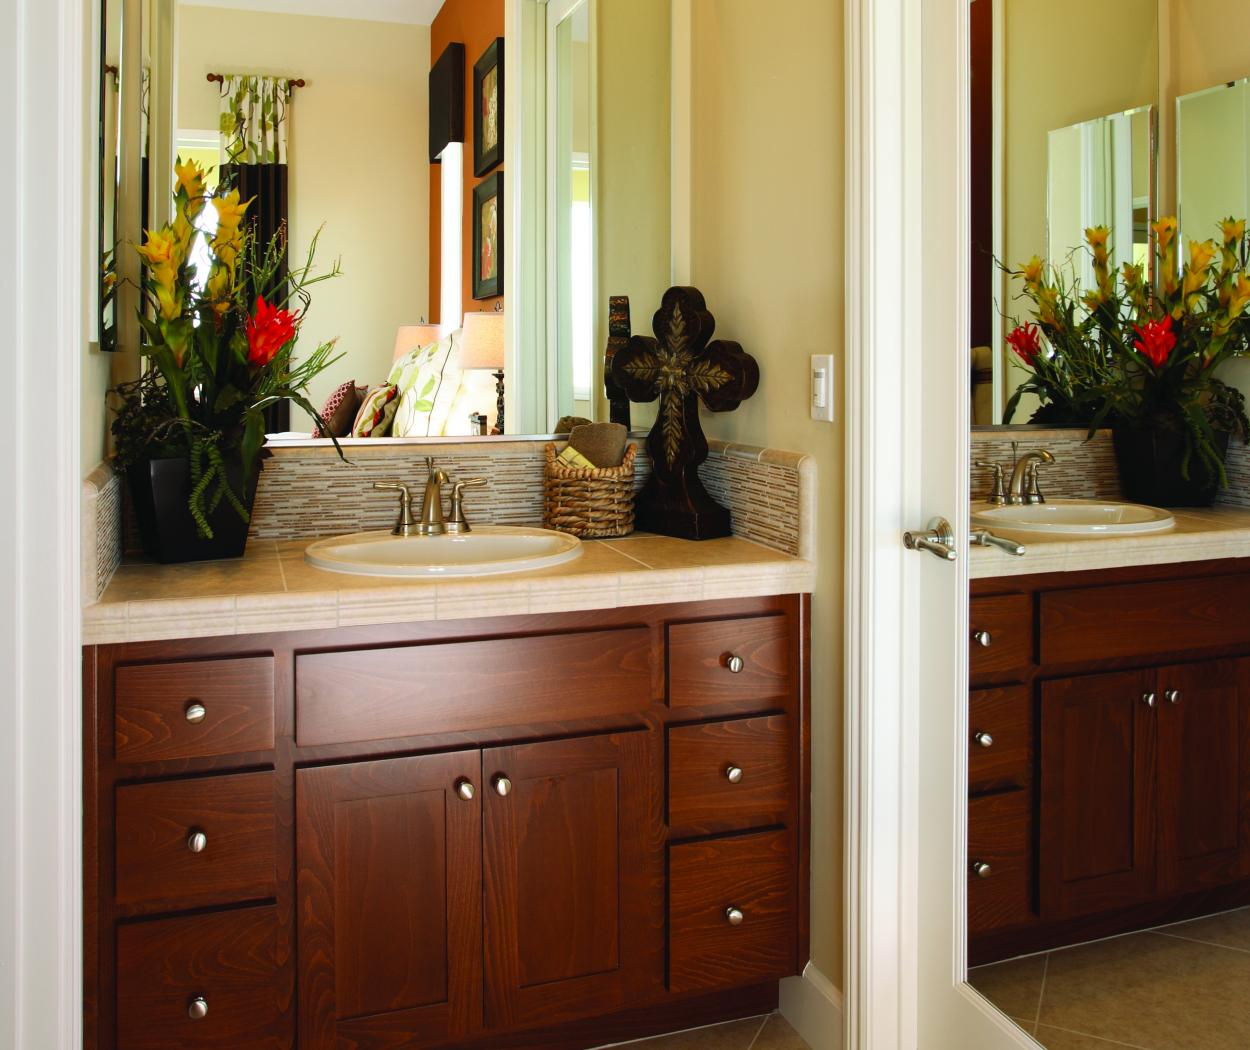 Beautiful Stained, Shaker Style Bathroom Vanity with a Chrome Faucet and Knobs